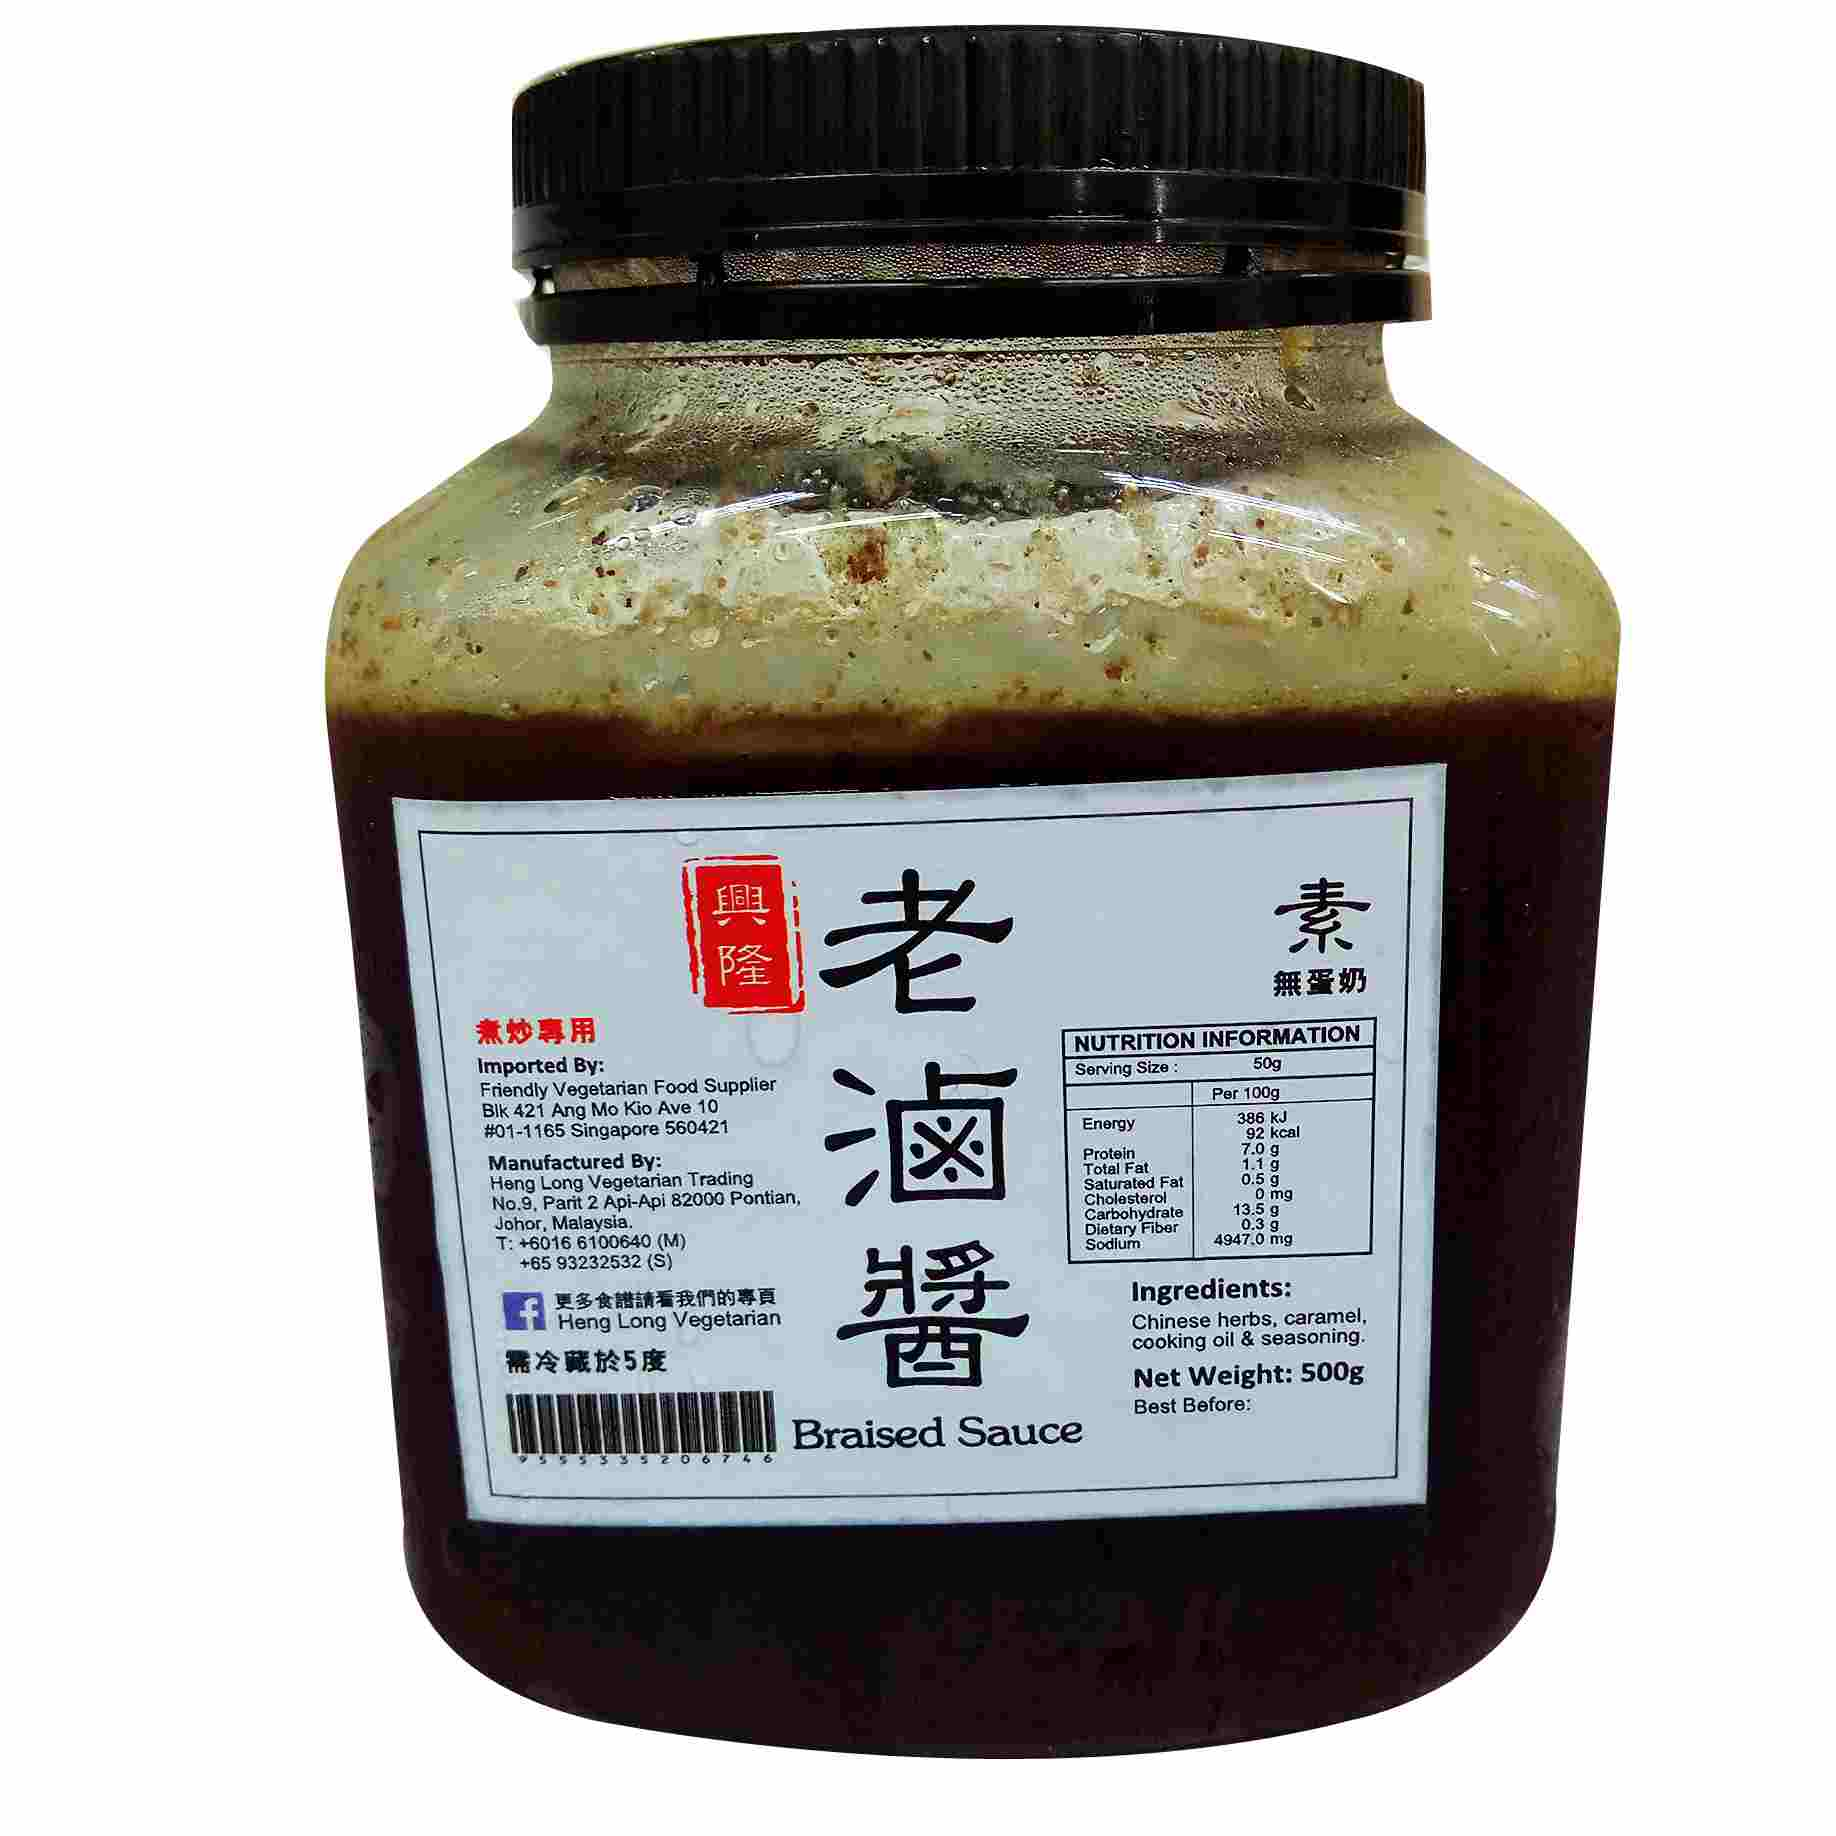 Image Heng Long Braised Sauce 兴隆 - 老滷酱 500grams